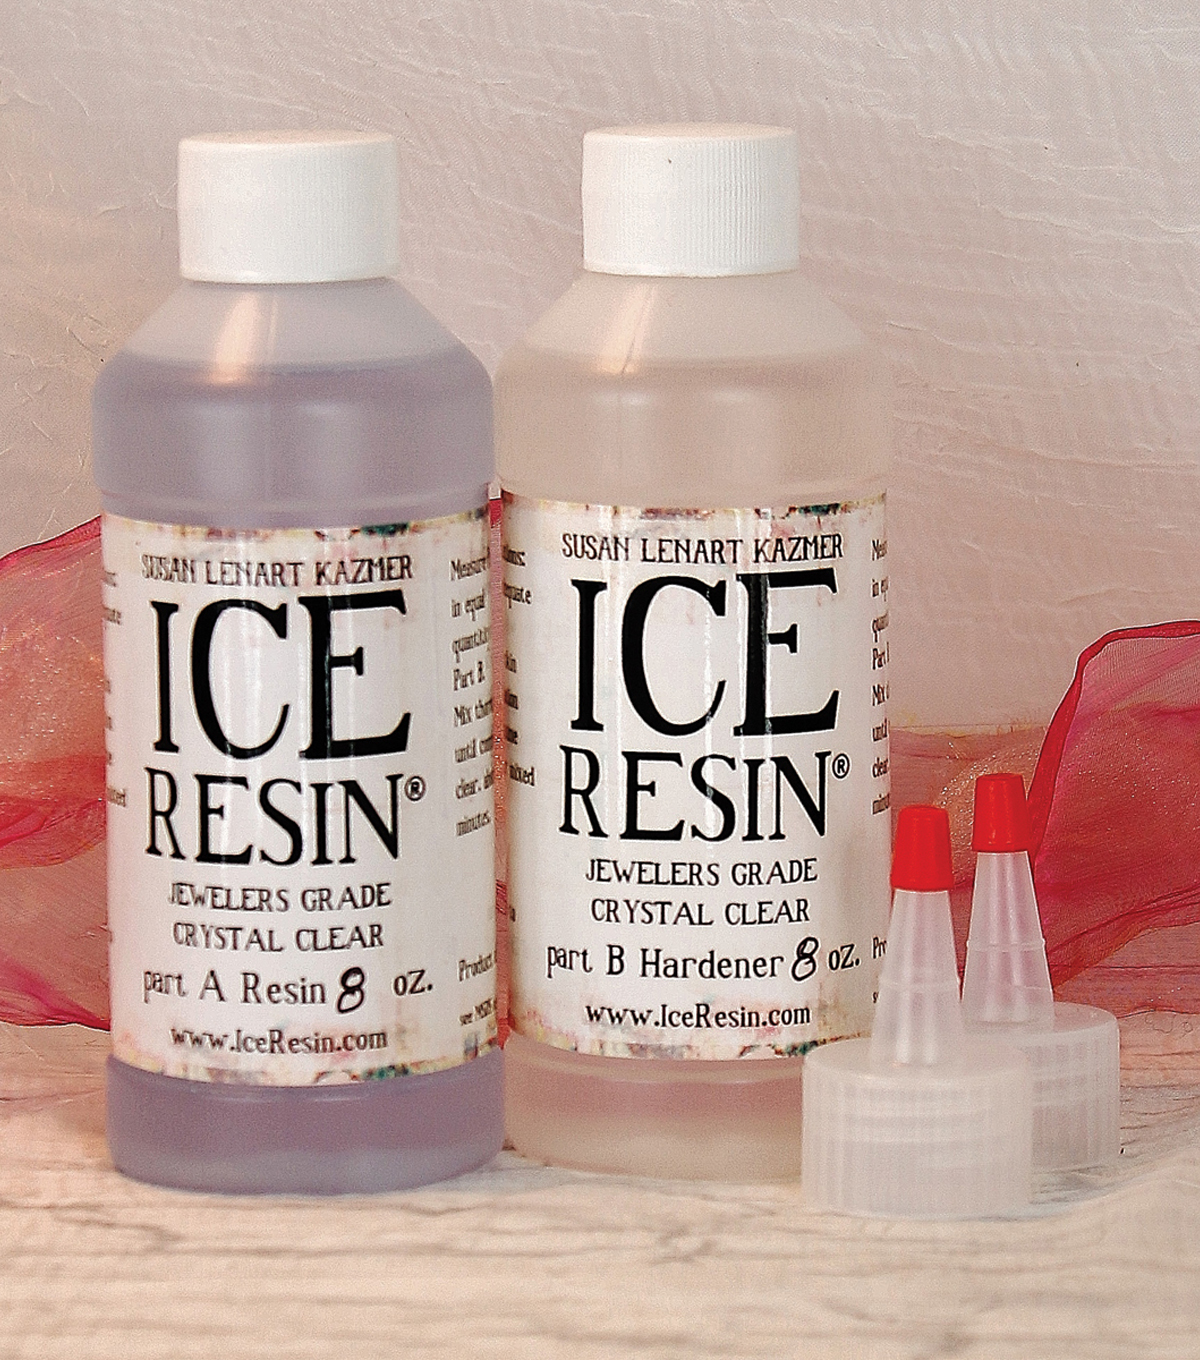 ICE Resin 16oz Refill Kit-8oz Resin & 8oz Hardener